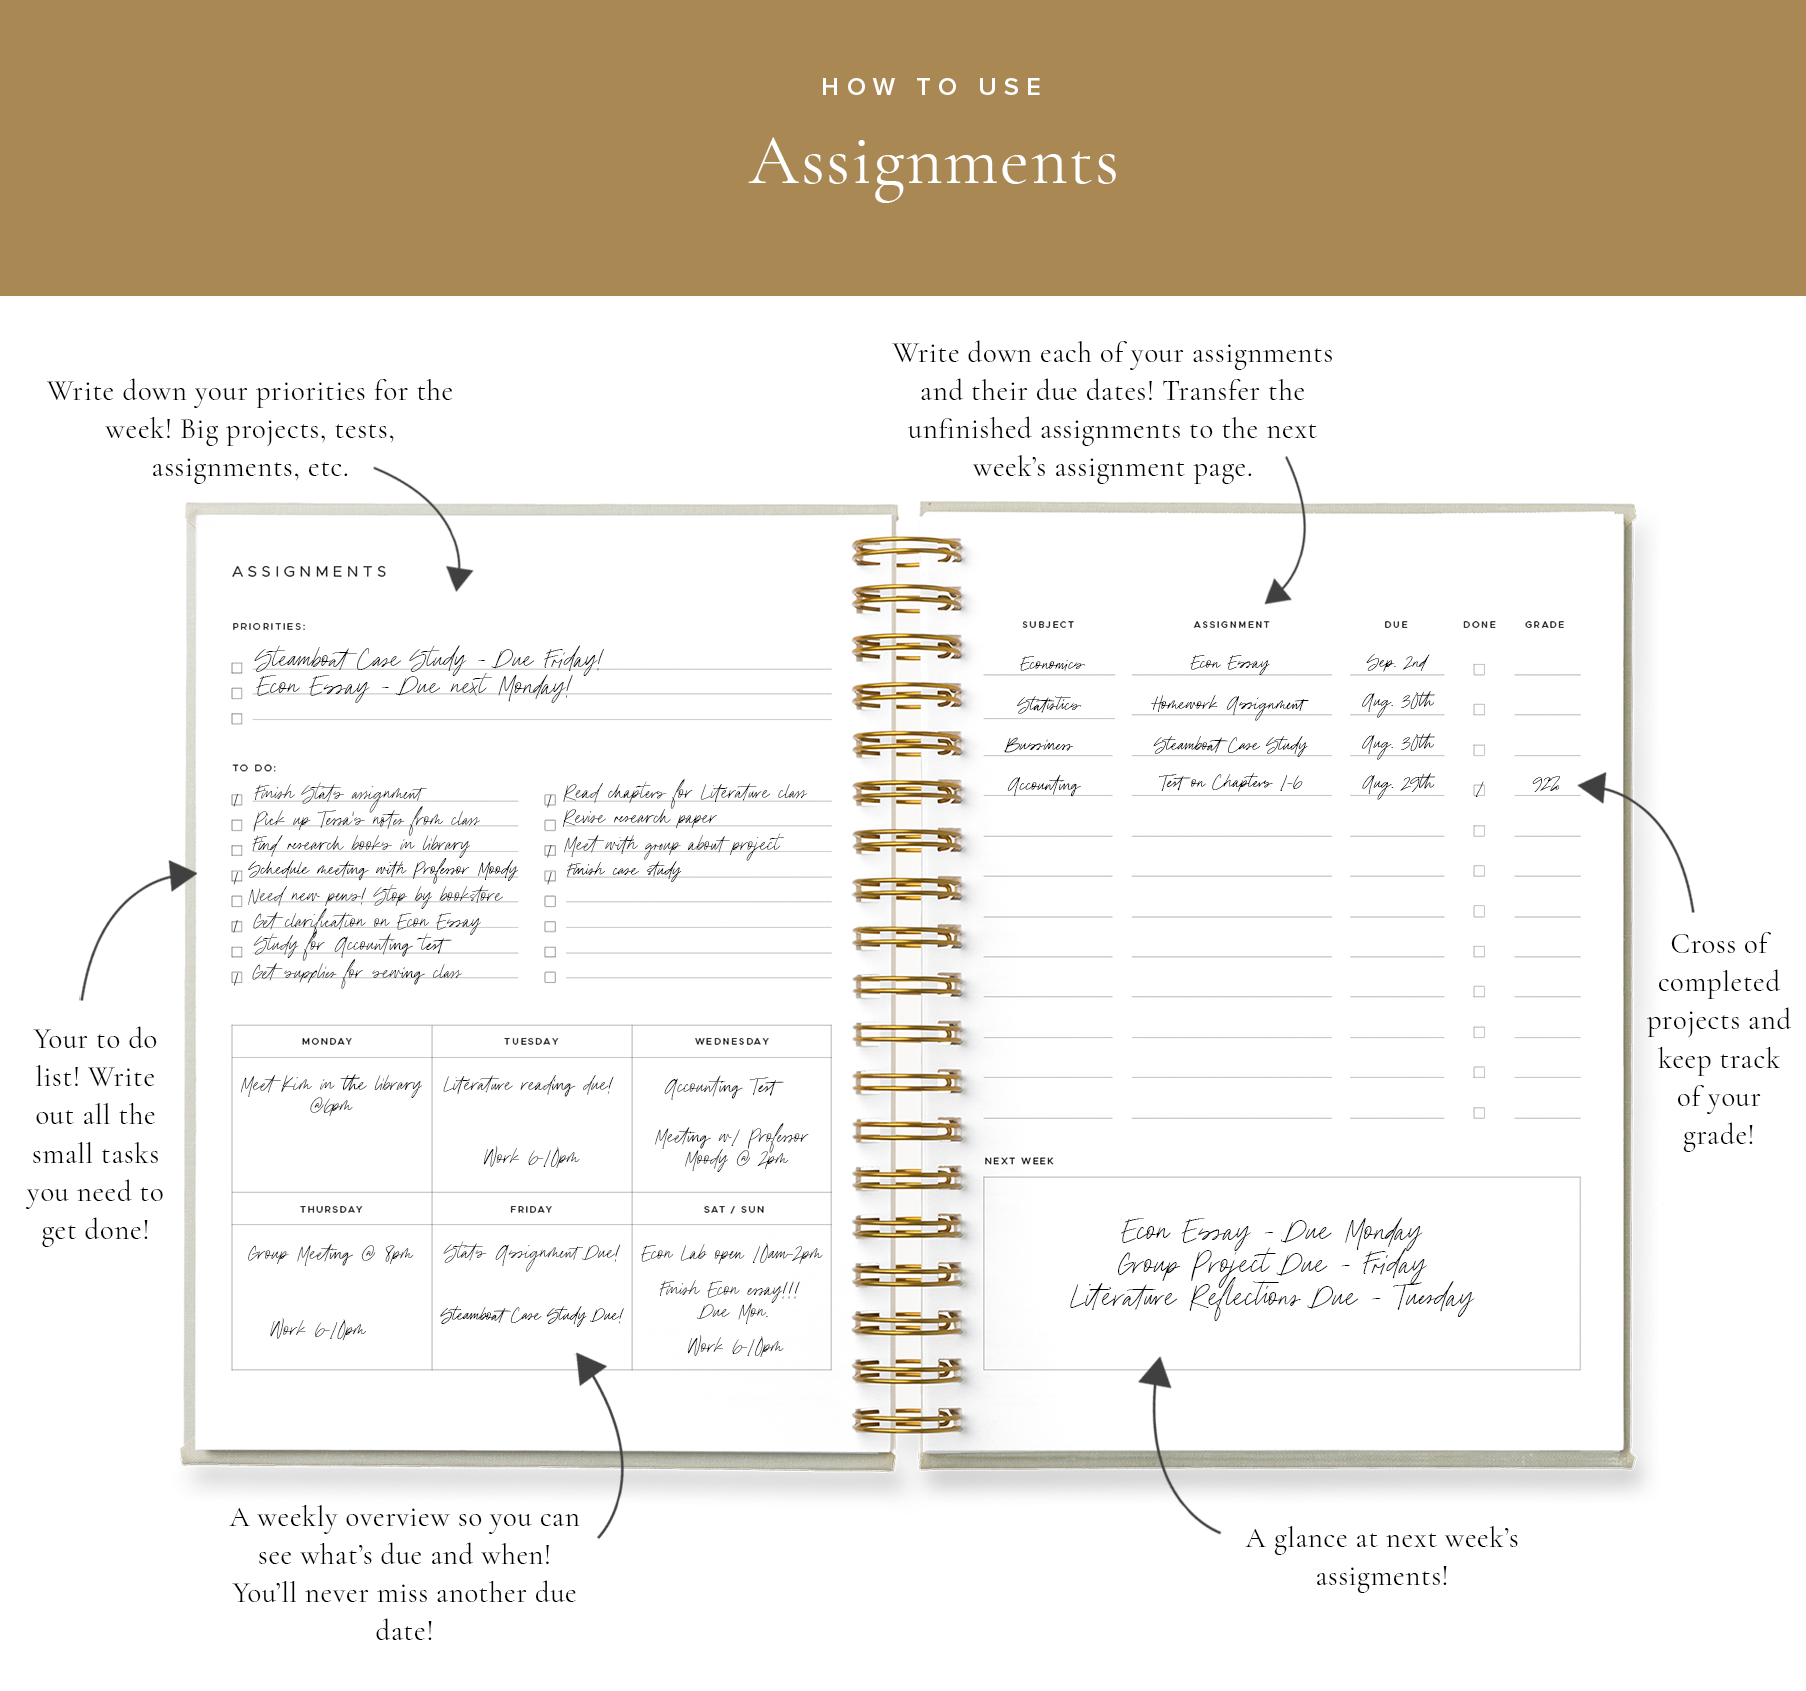 Blog How to Use - Assignments 1.png